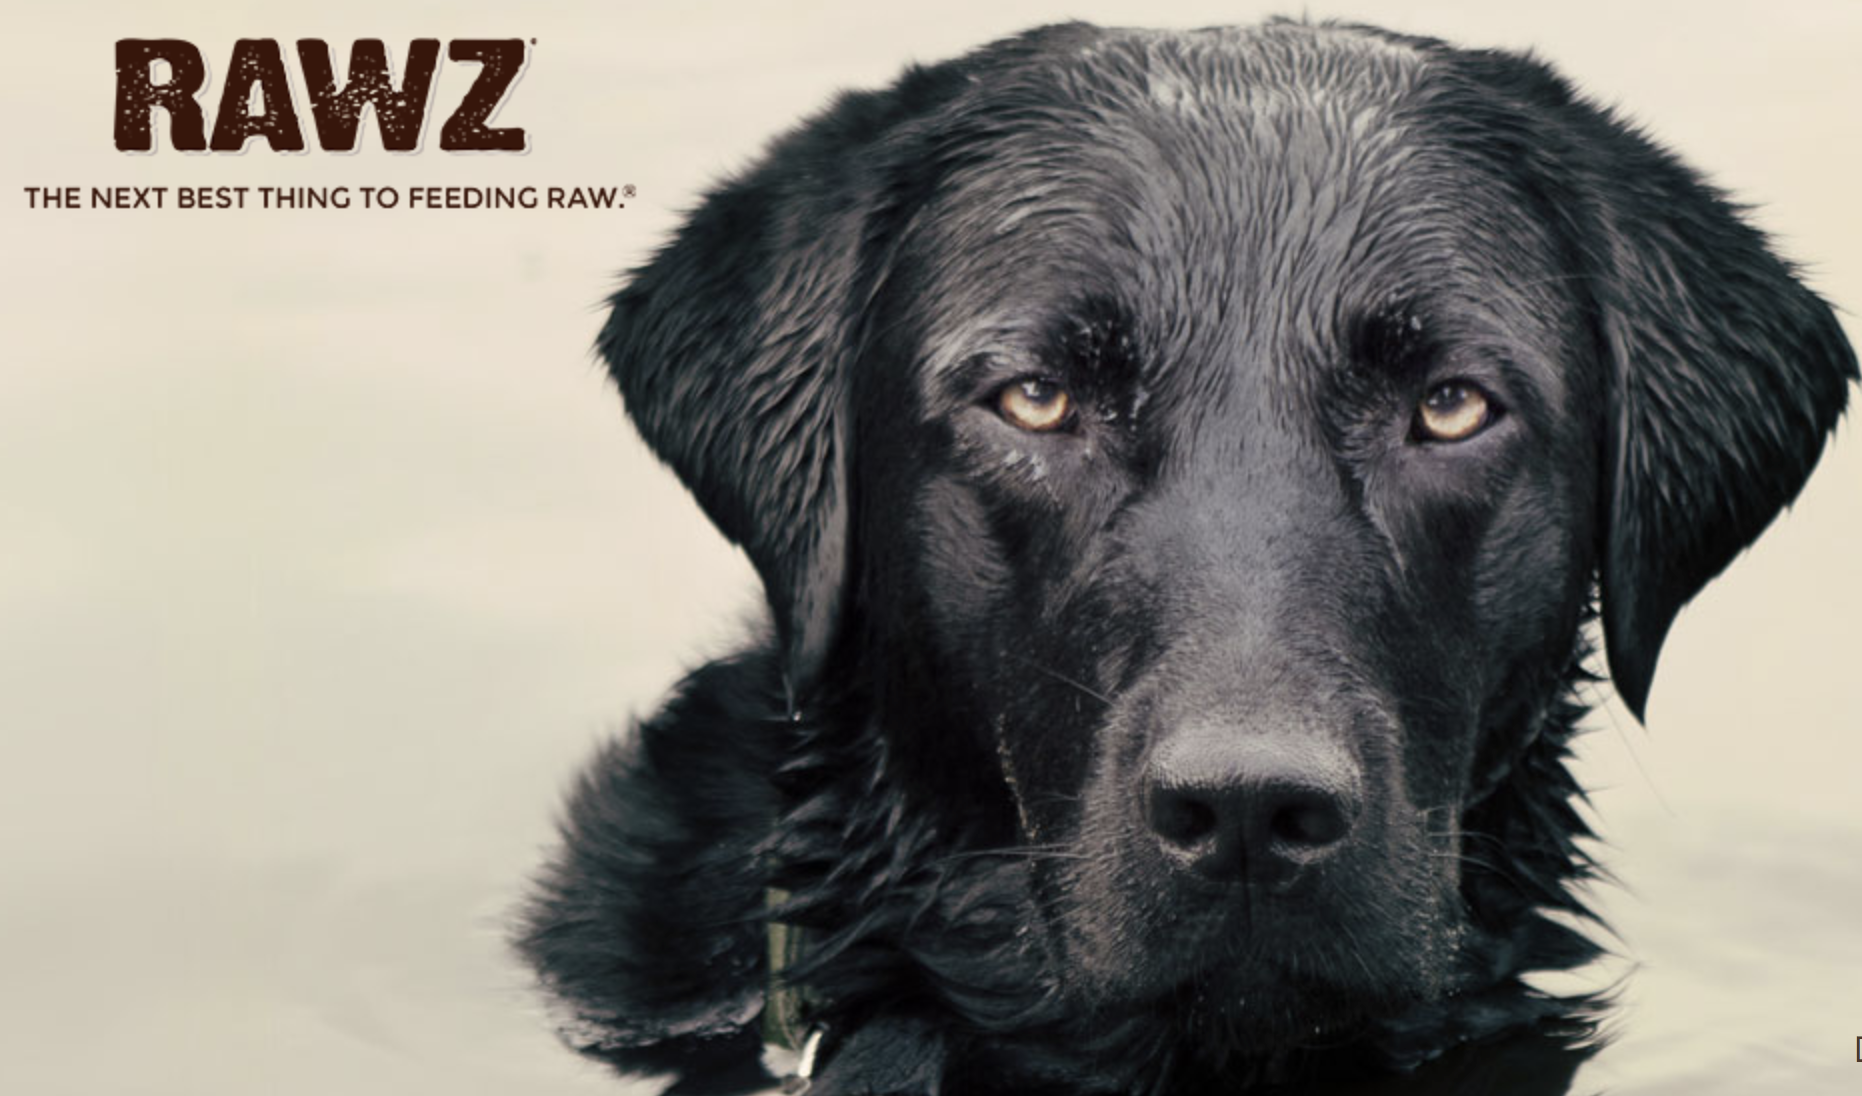 RAWZ: Our first goal is to offer your pet nutritionally exceptional recipes that provide the highest meat content possible, utilizing natural alternatives to highly-processed ingredients. Our second goal is to give back. Our sons both acquired life-altering injuries. As they were recovering, we experienced the spiritual impact a pet can have on its family. Living through that difficult time, we received tremendous comfort and support from Boomer, our family's yellow lab. In recognition of the crucial role Boomer played as we transitioned into a new chapter of our lives together, we pledged as a family to donate 100% of the profits (after taxes and reserves) from RAWZ® to three main causes: providing service dogs, spinal cord injury and traumatic brain injury.